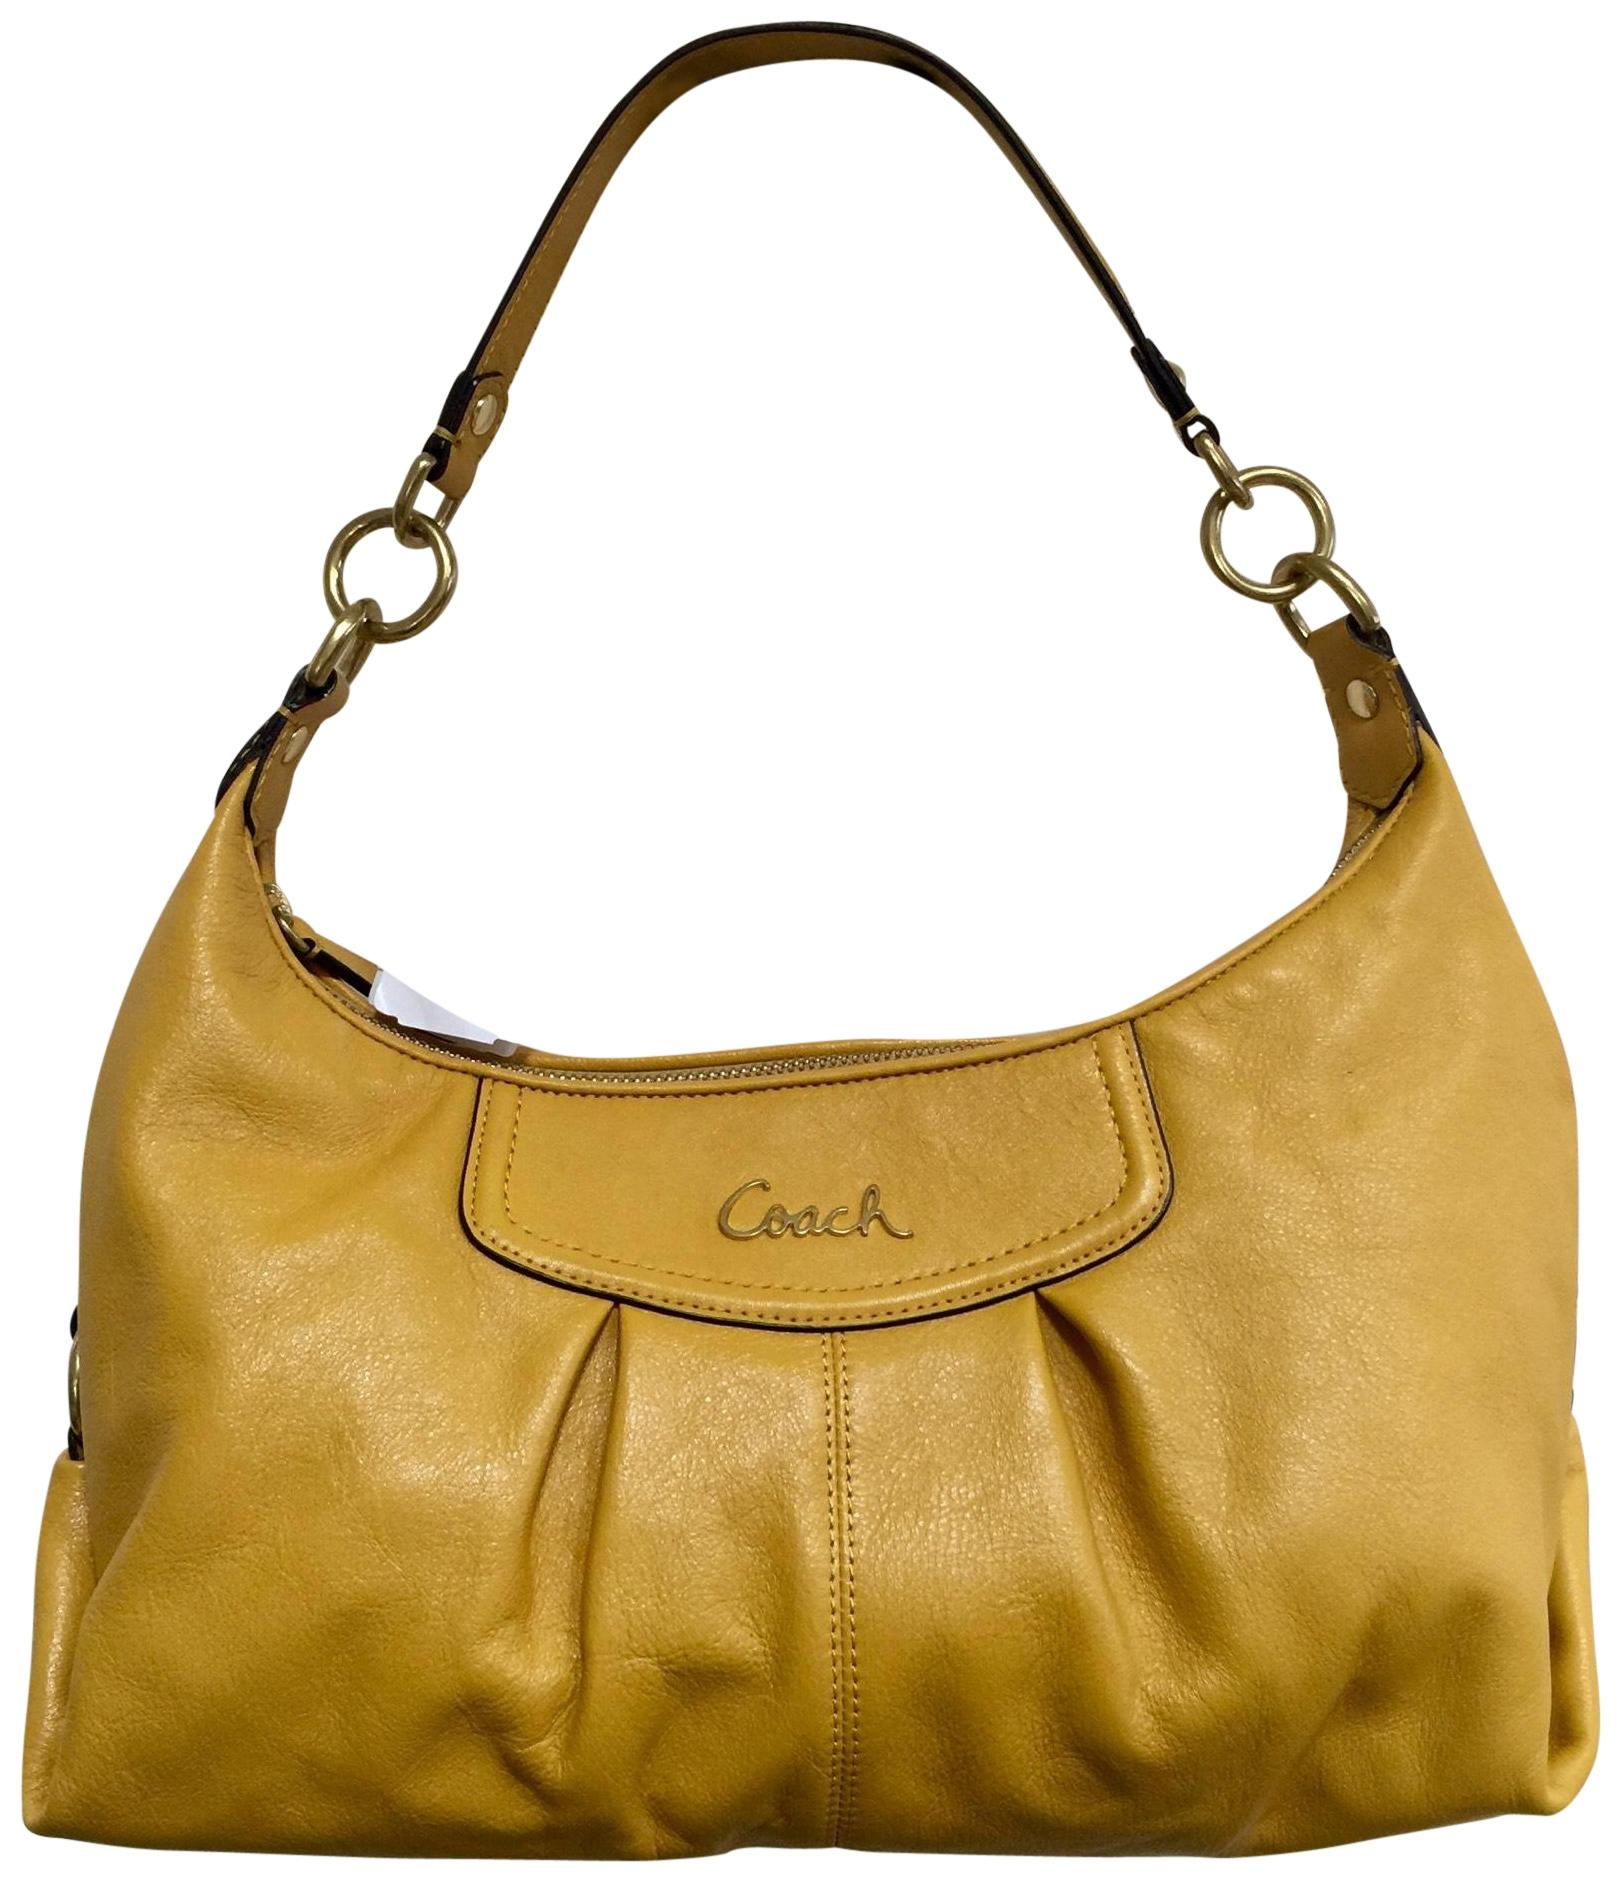 ... sale gold coach hobo bags up to 90 off at tradesy f027c 04723 ... 315901e392